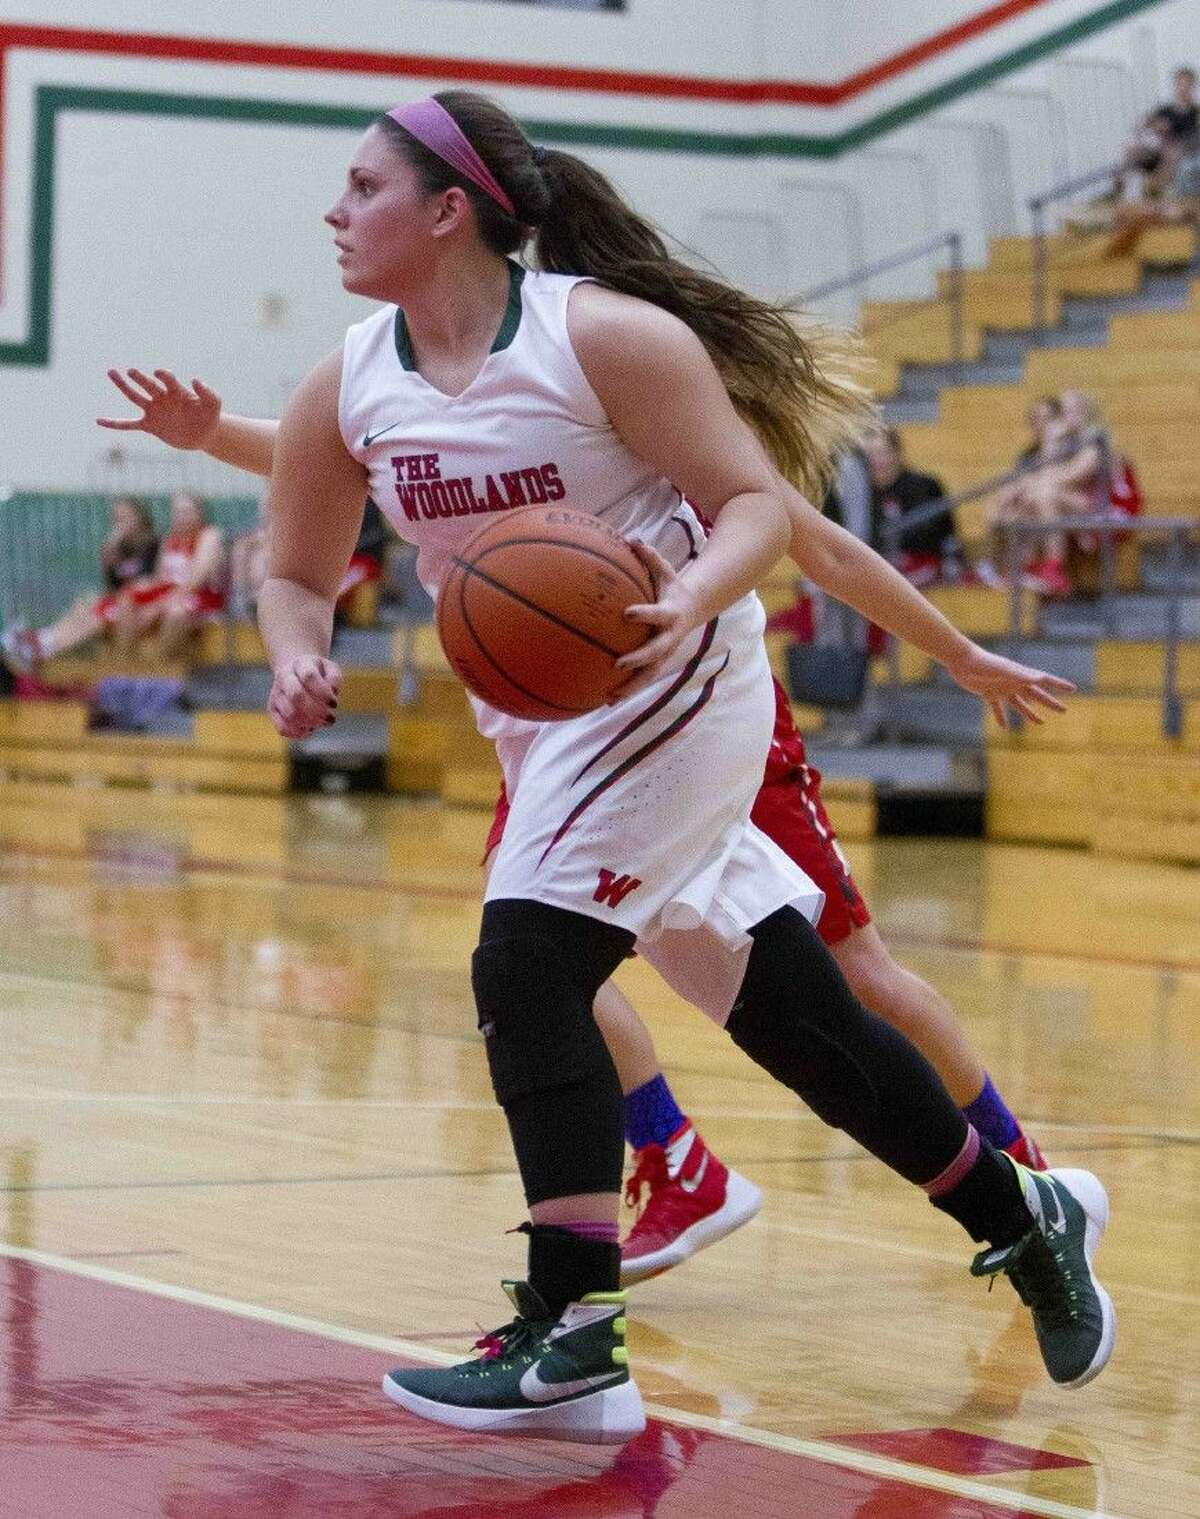 The Woodlands guard Julia Glandt looks to pass Tuesday in The Woodlands.